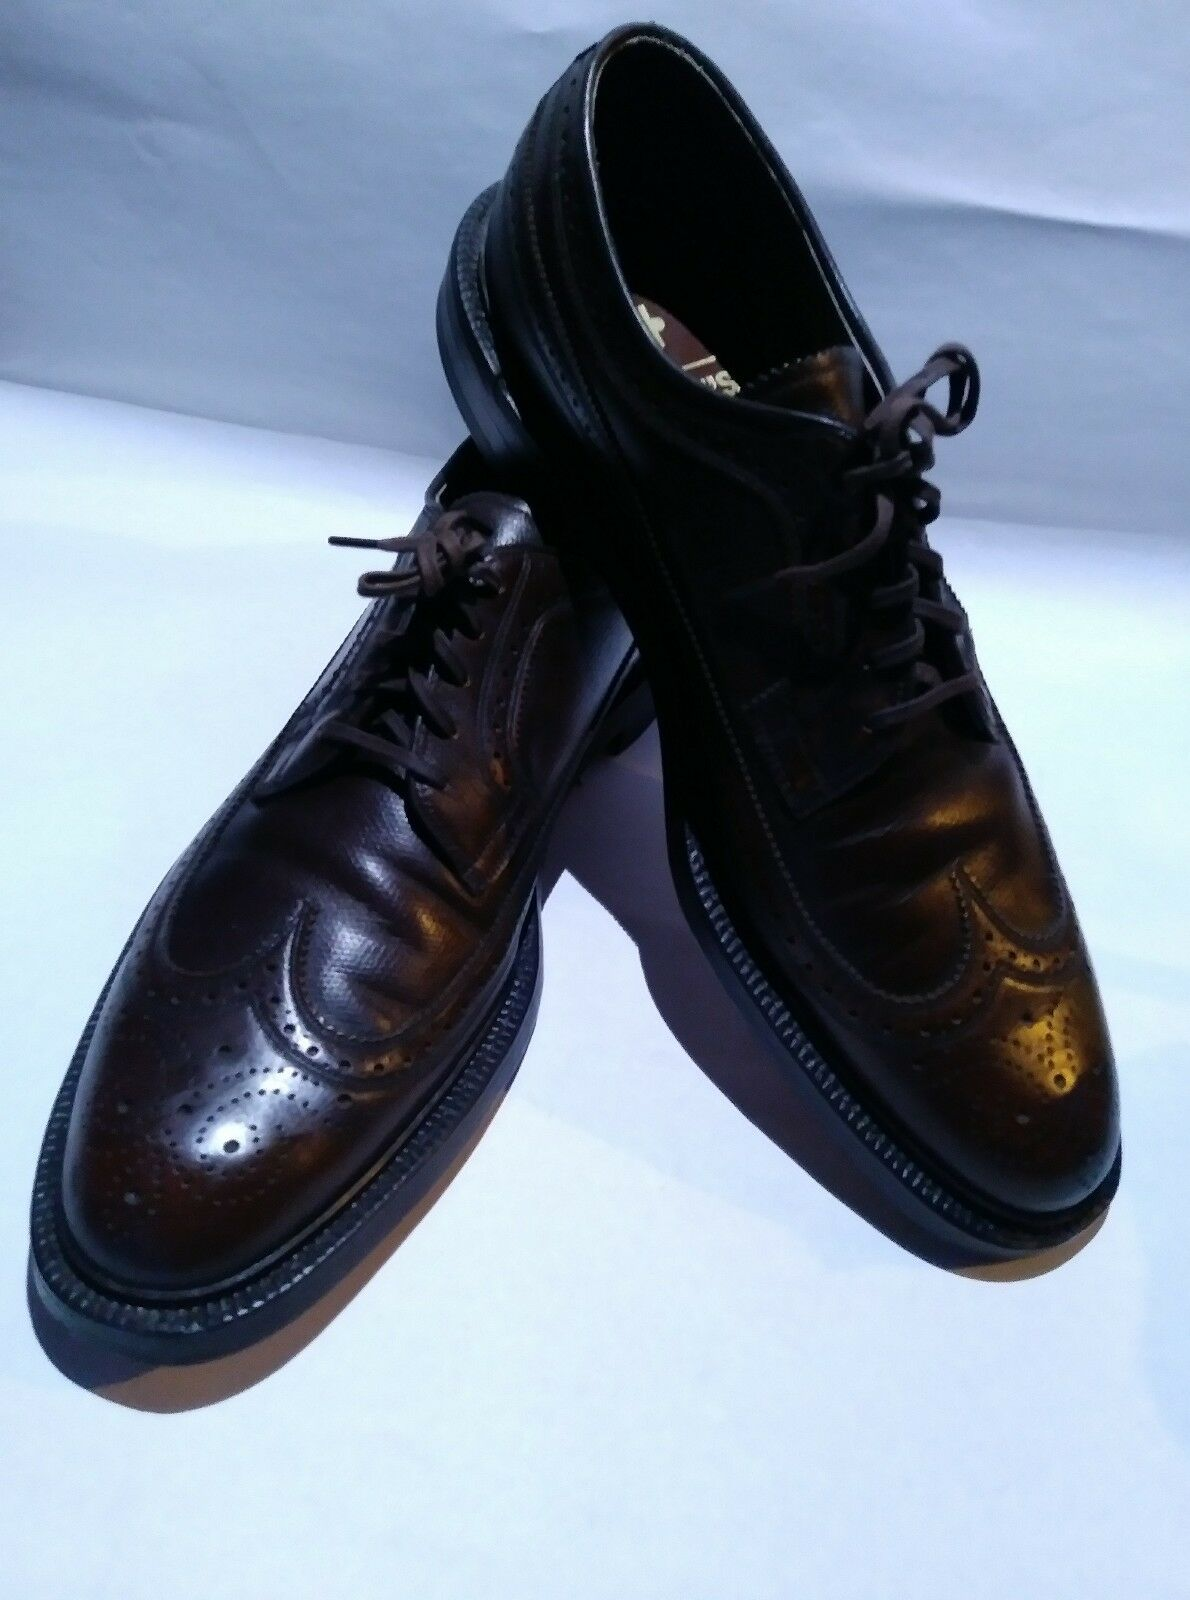 Johansen And Murphy Aristocraft Brown Size 12 Wingtip Dress shoes made in USA